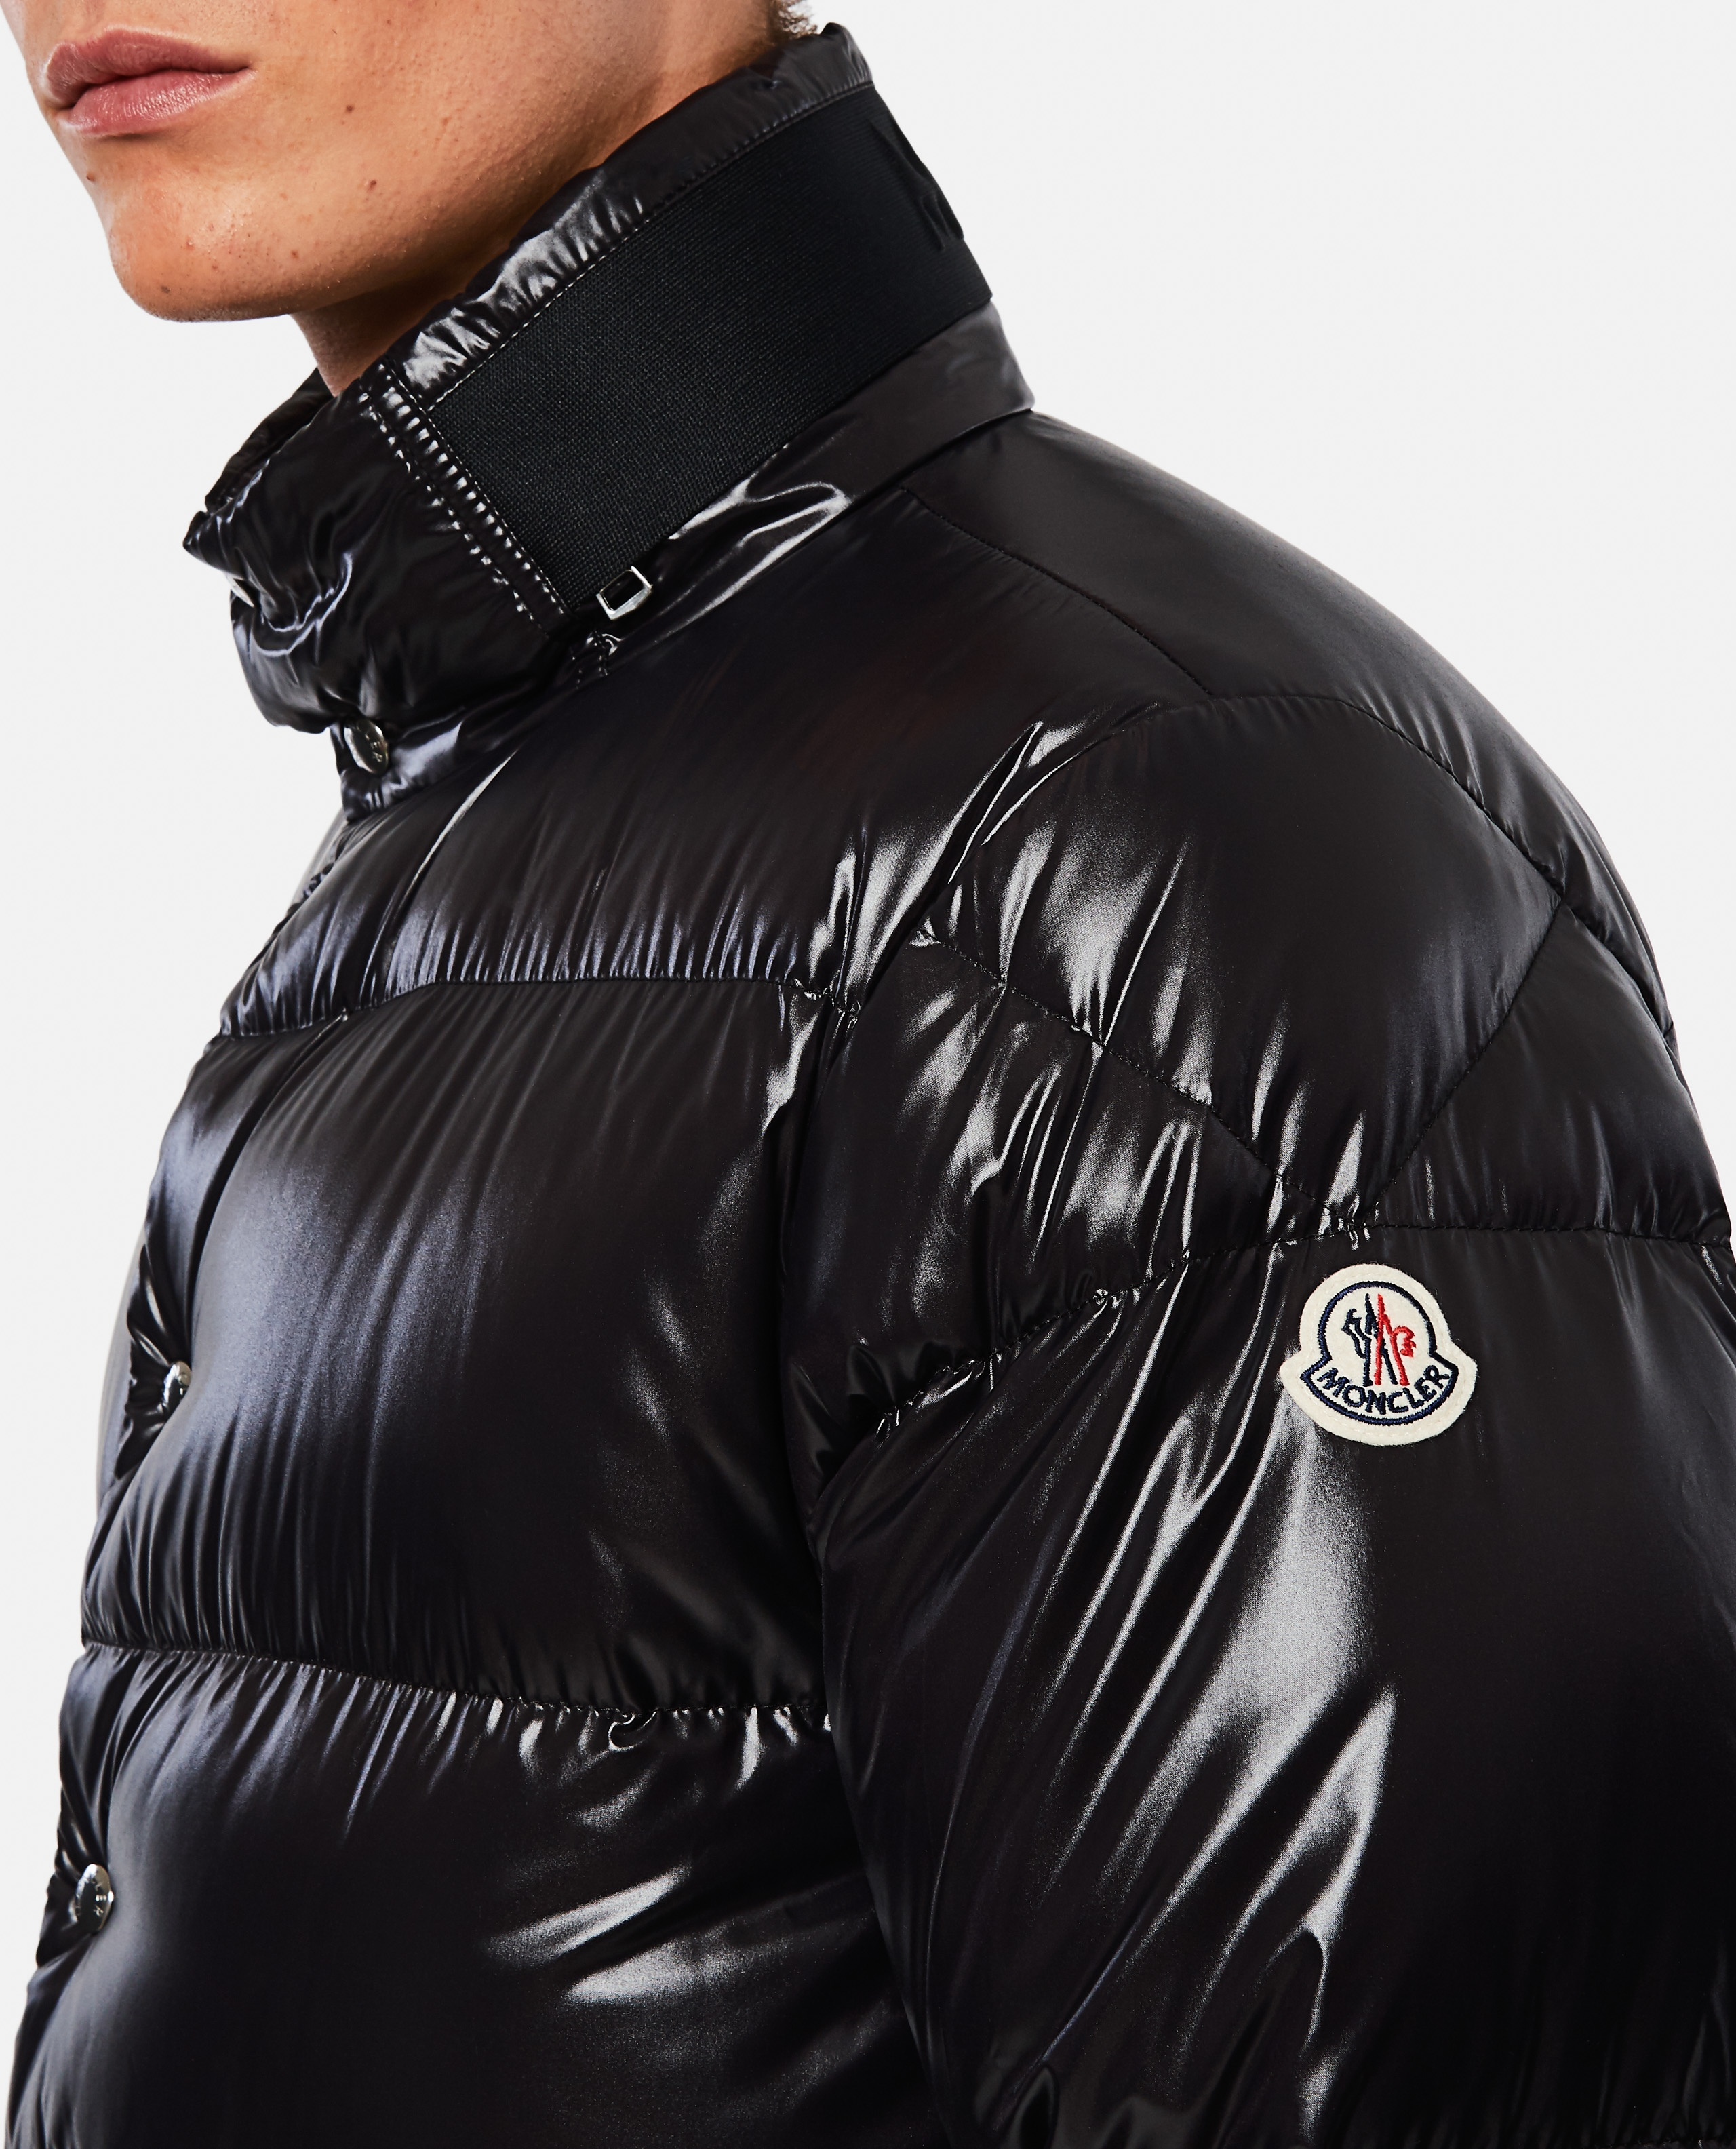 RATEAU Jacket Men Moncler 000271390039984 4